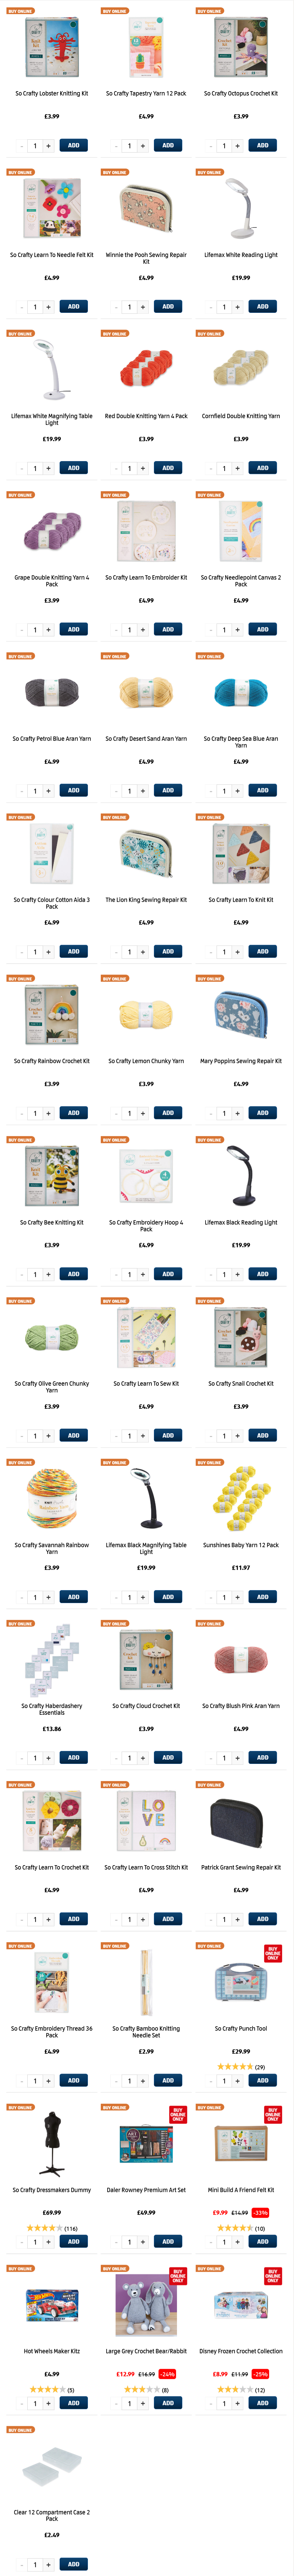 ALDI Thursday Offers Hobbies & Crafts 4th March 2021